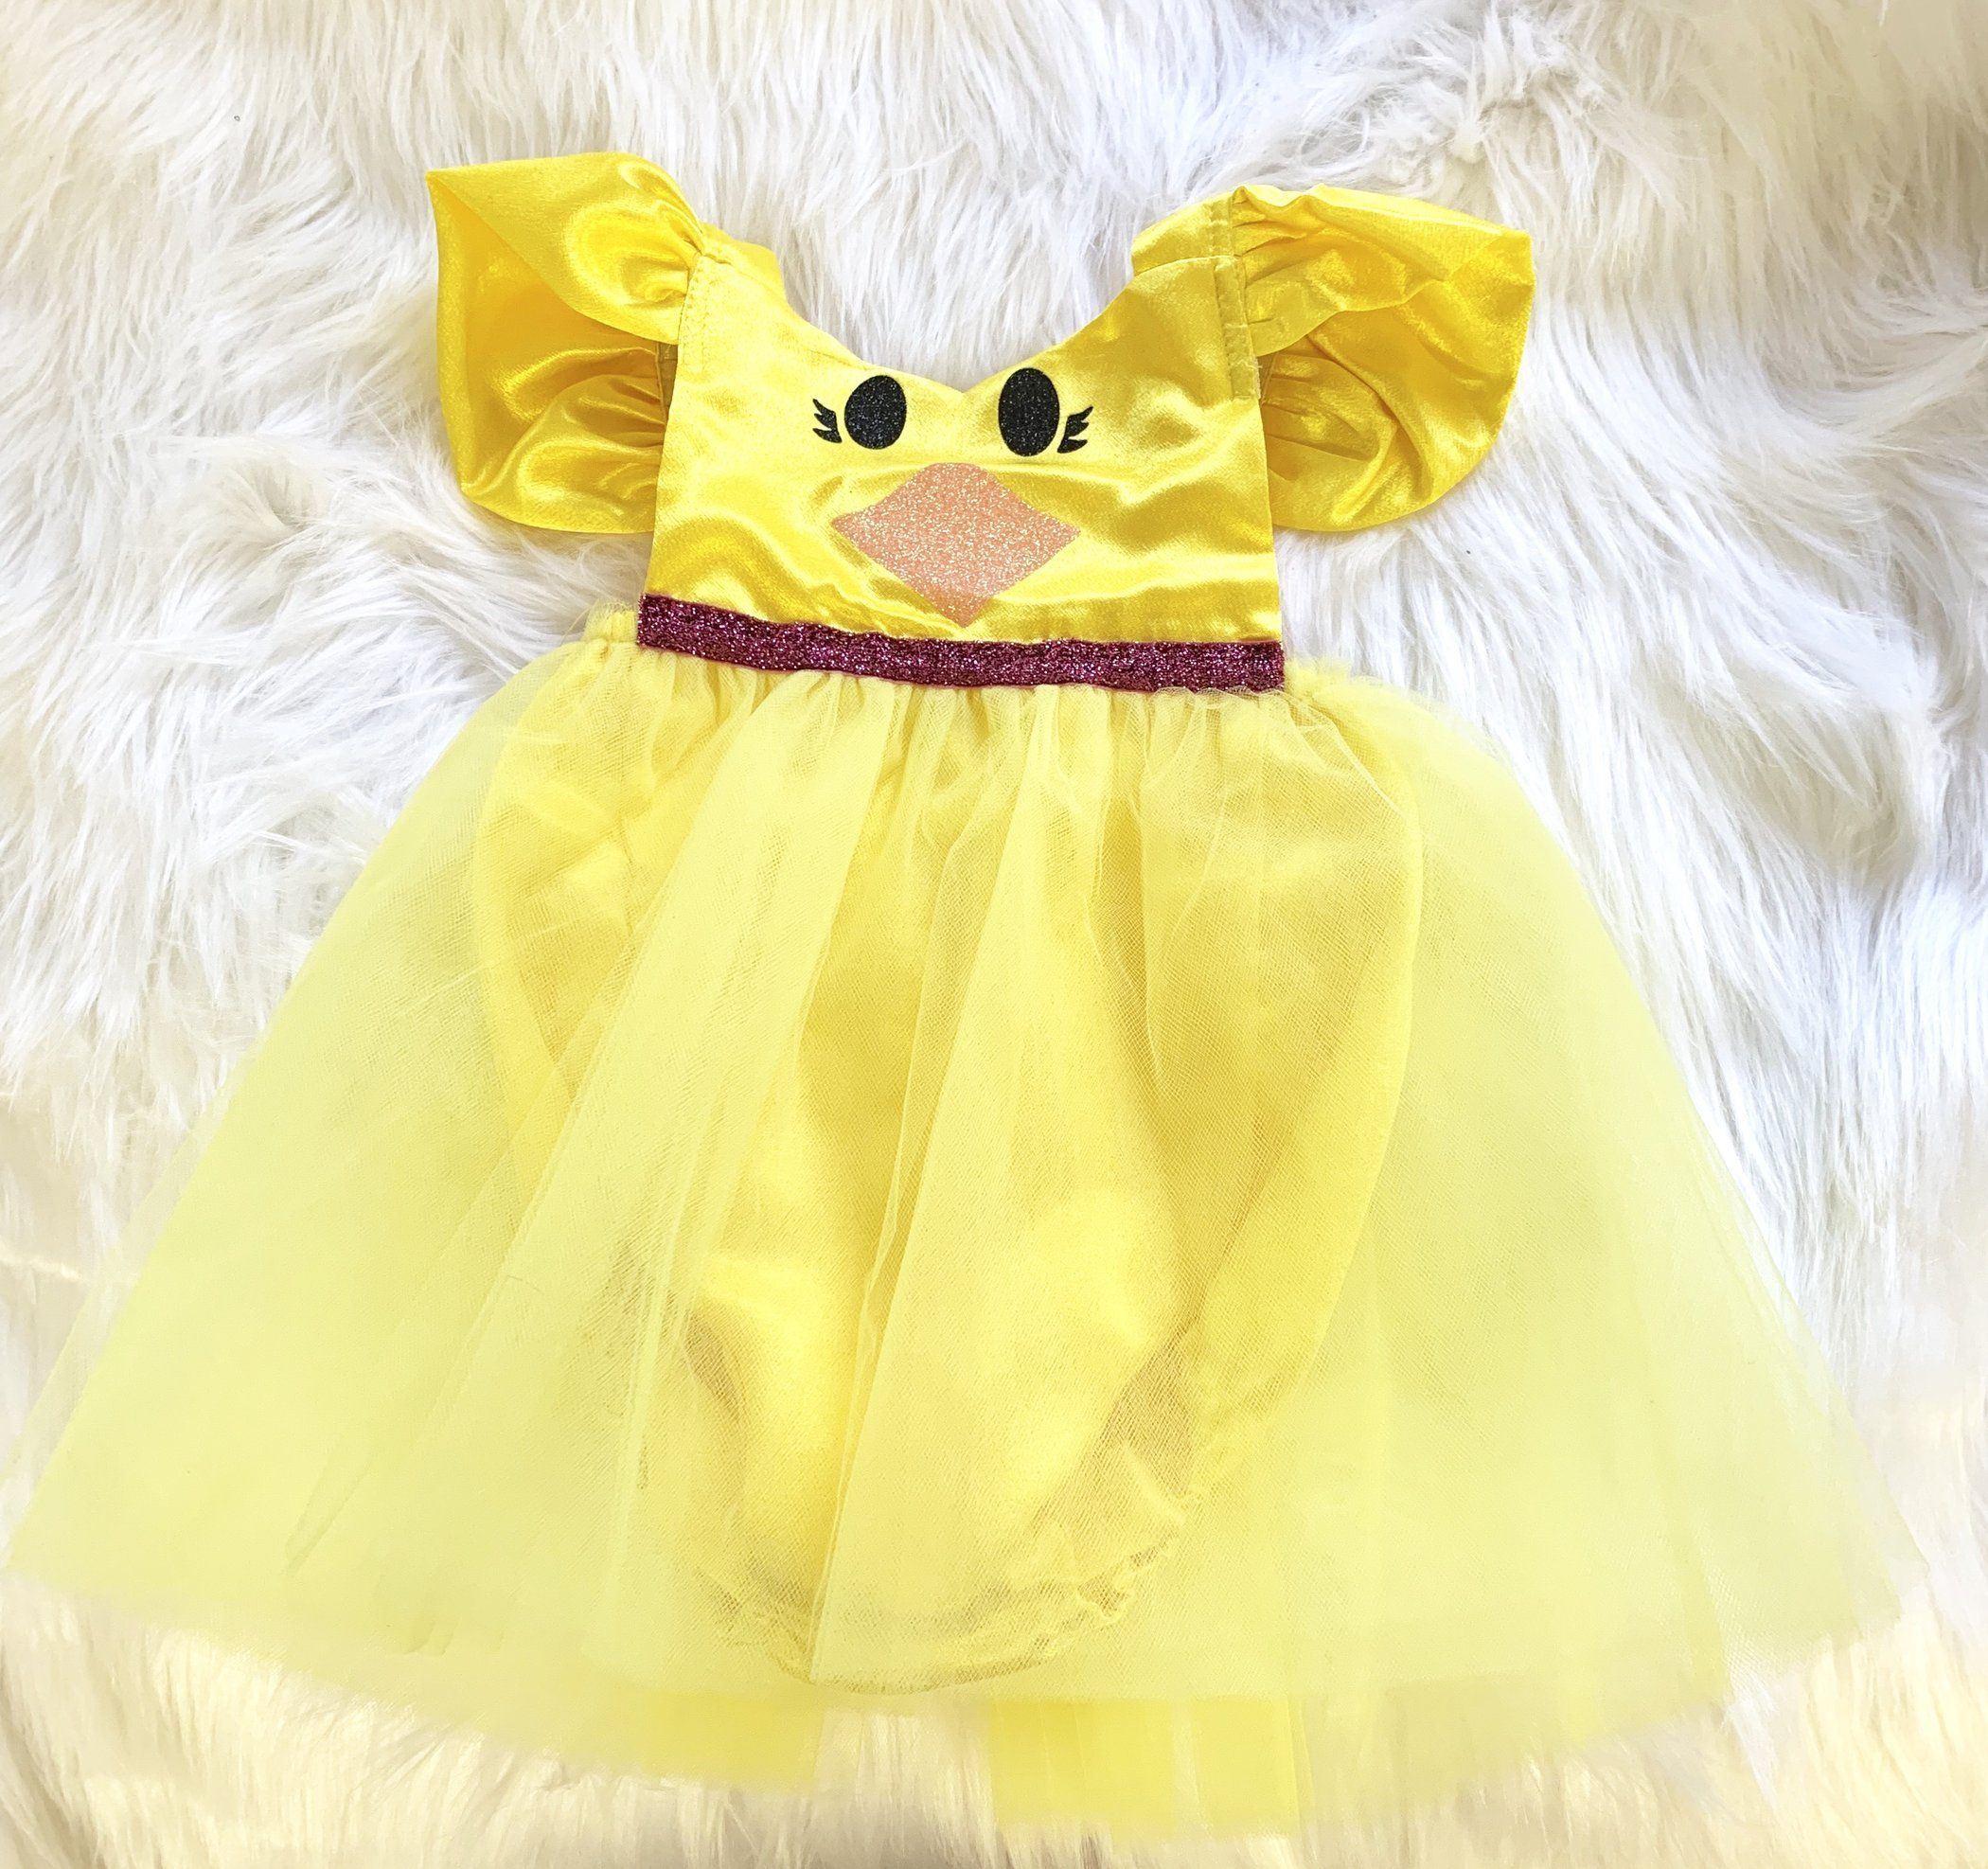 fa9daca7324 Pretty Little Peep Baby Chicks Peep Sparkle Tutu Romper handmade by  designer Belle Threads